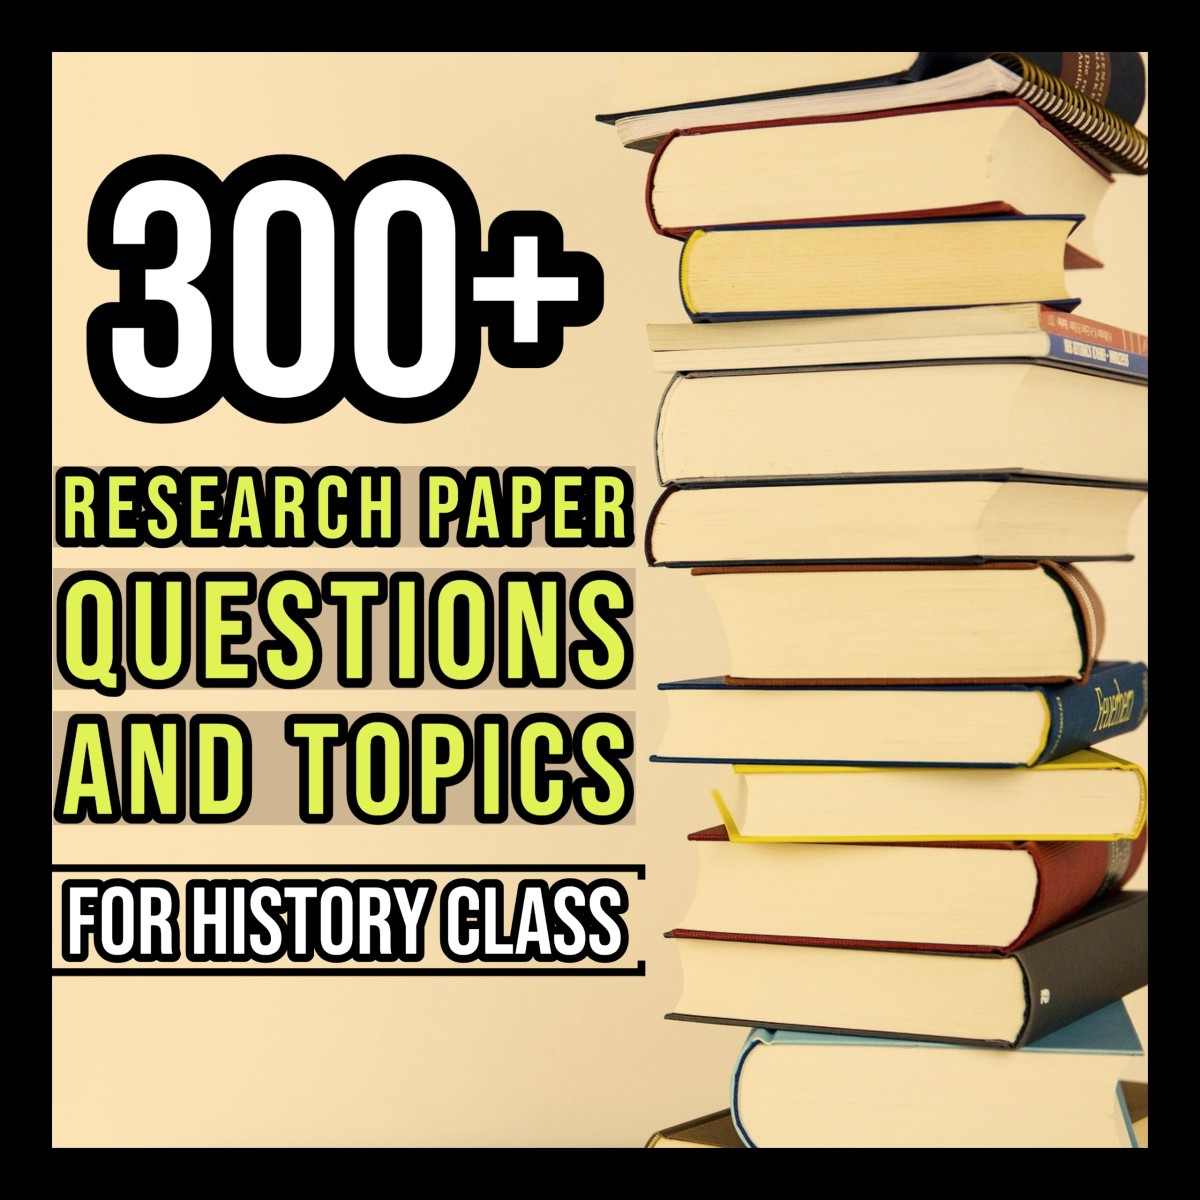 300+ Research Paper Questions and Topics for History Class.